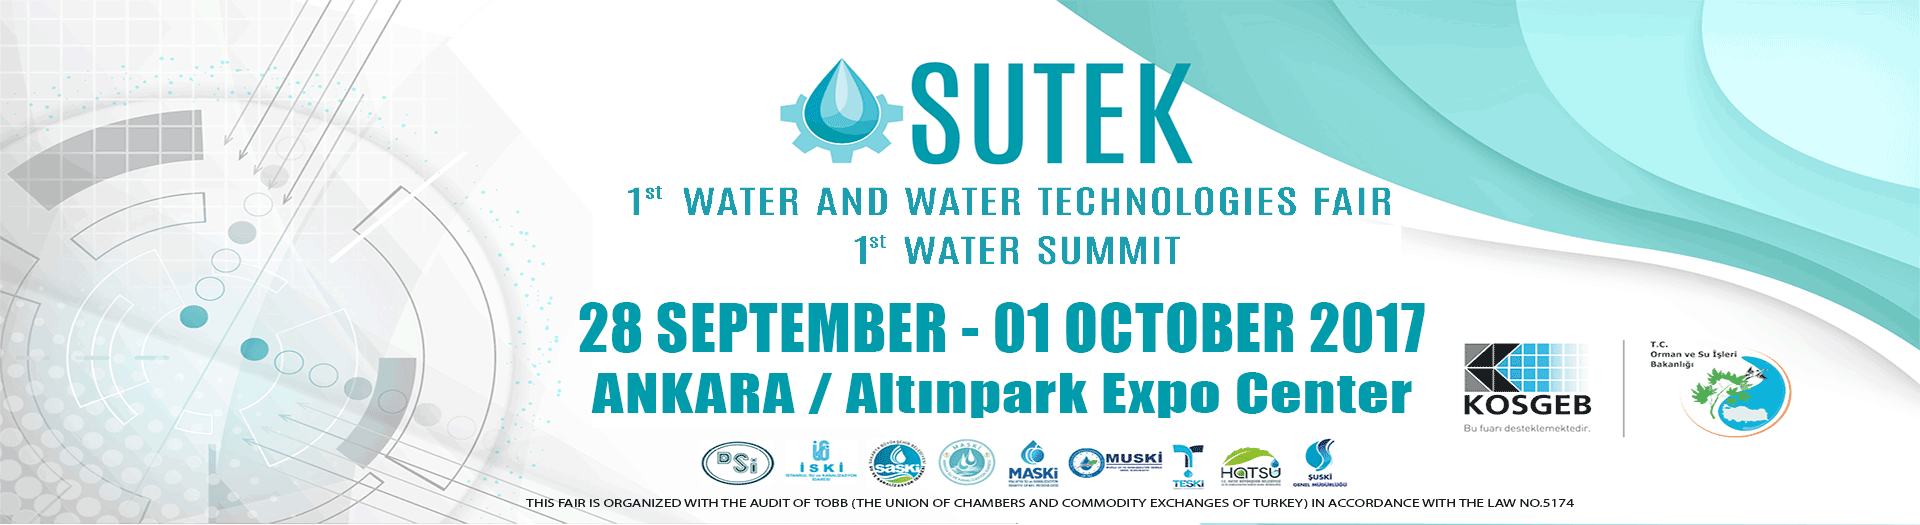 SUTEK 1st WATER AND WATER TECHNOLOGY FAIR